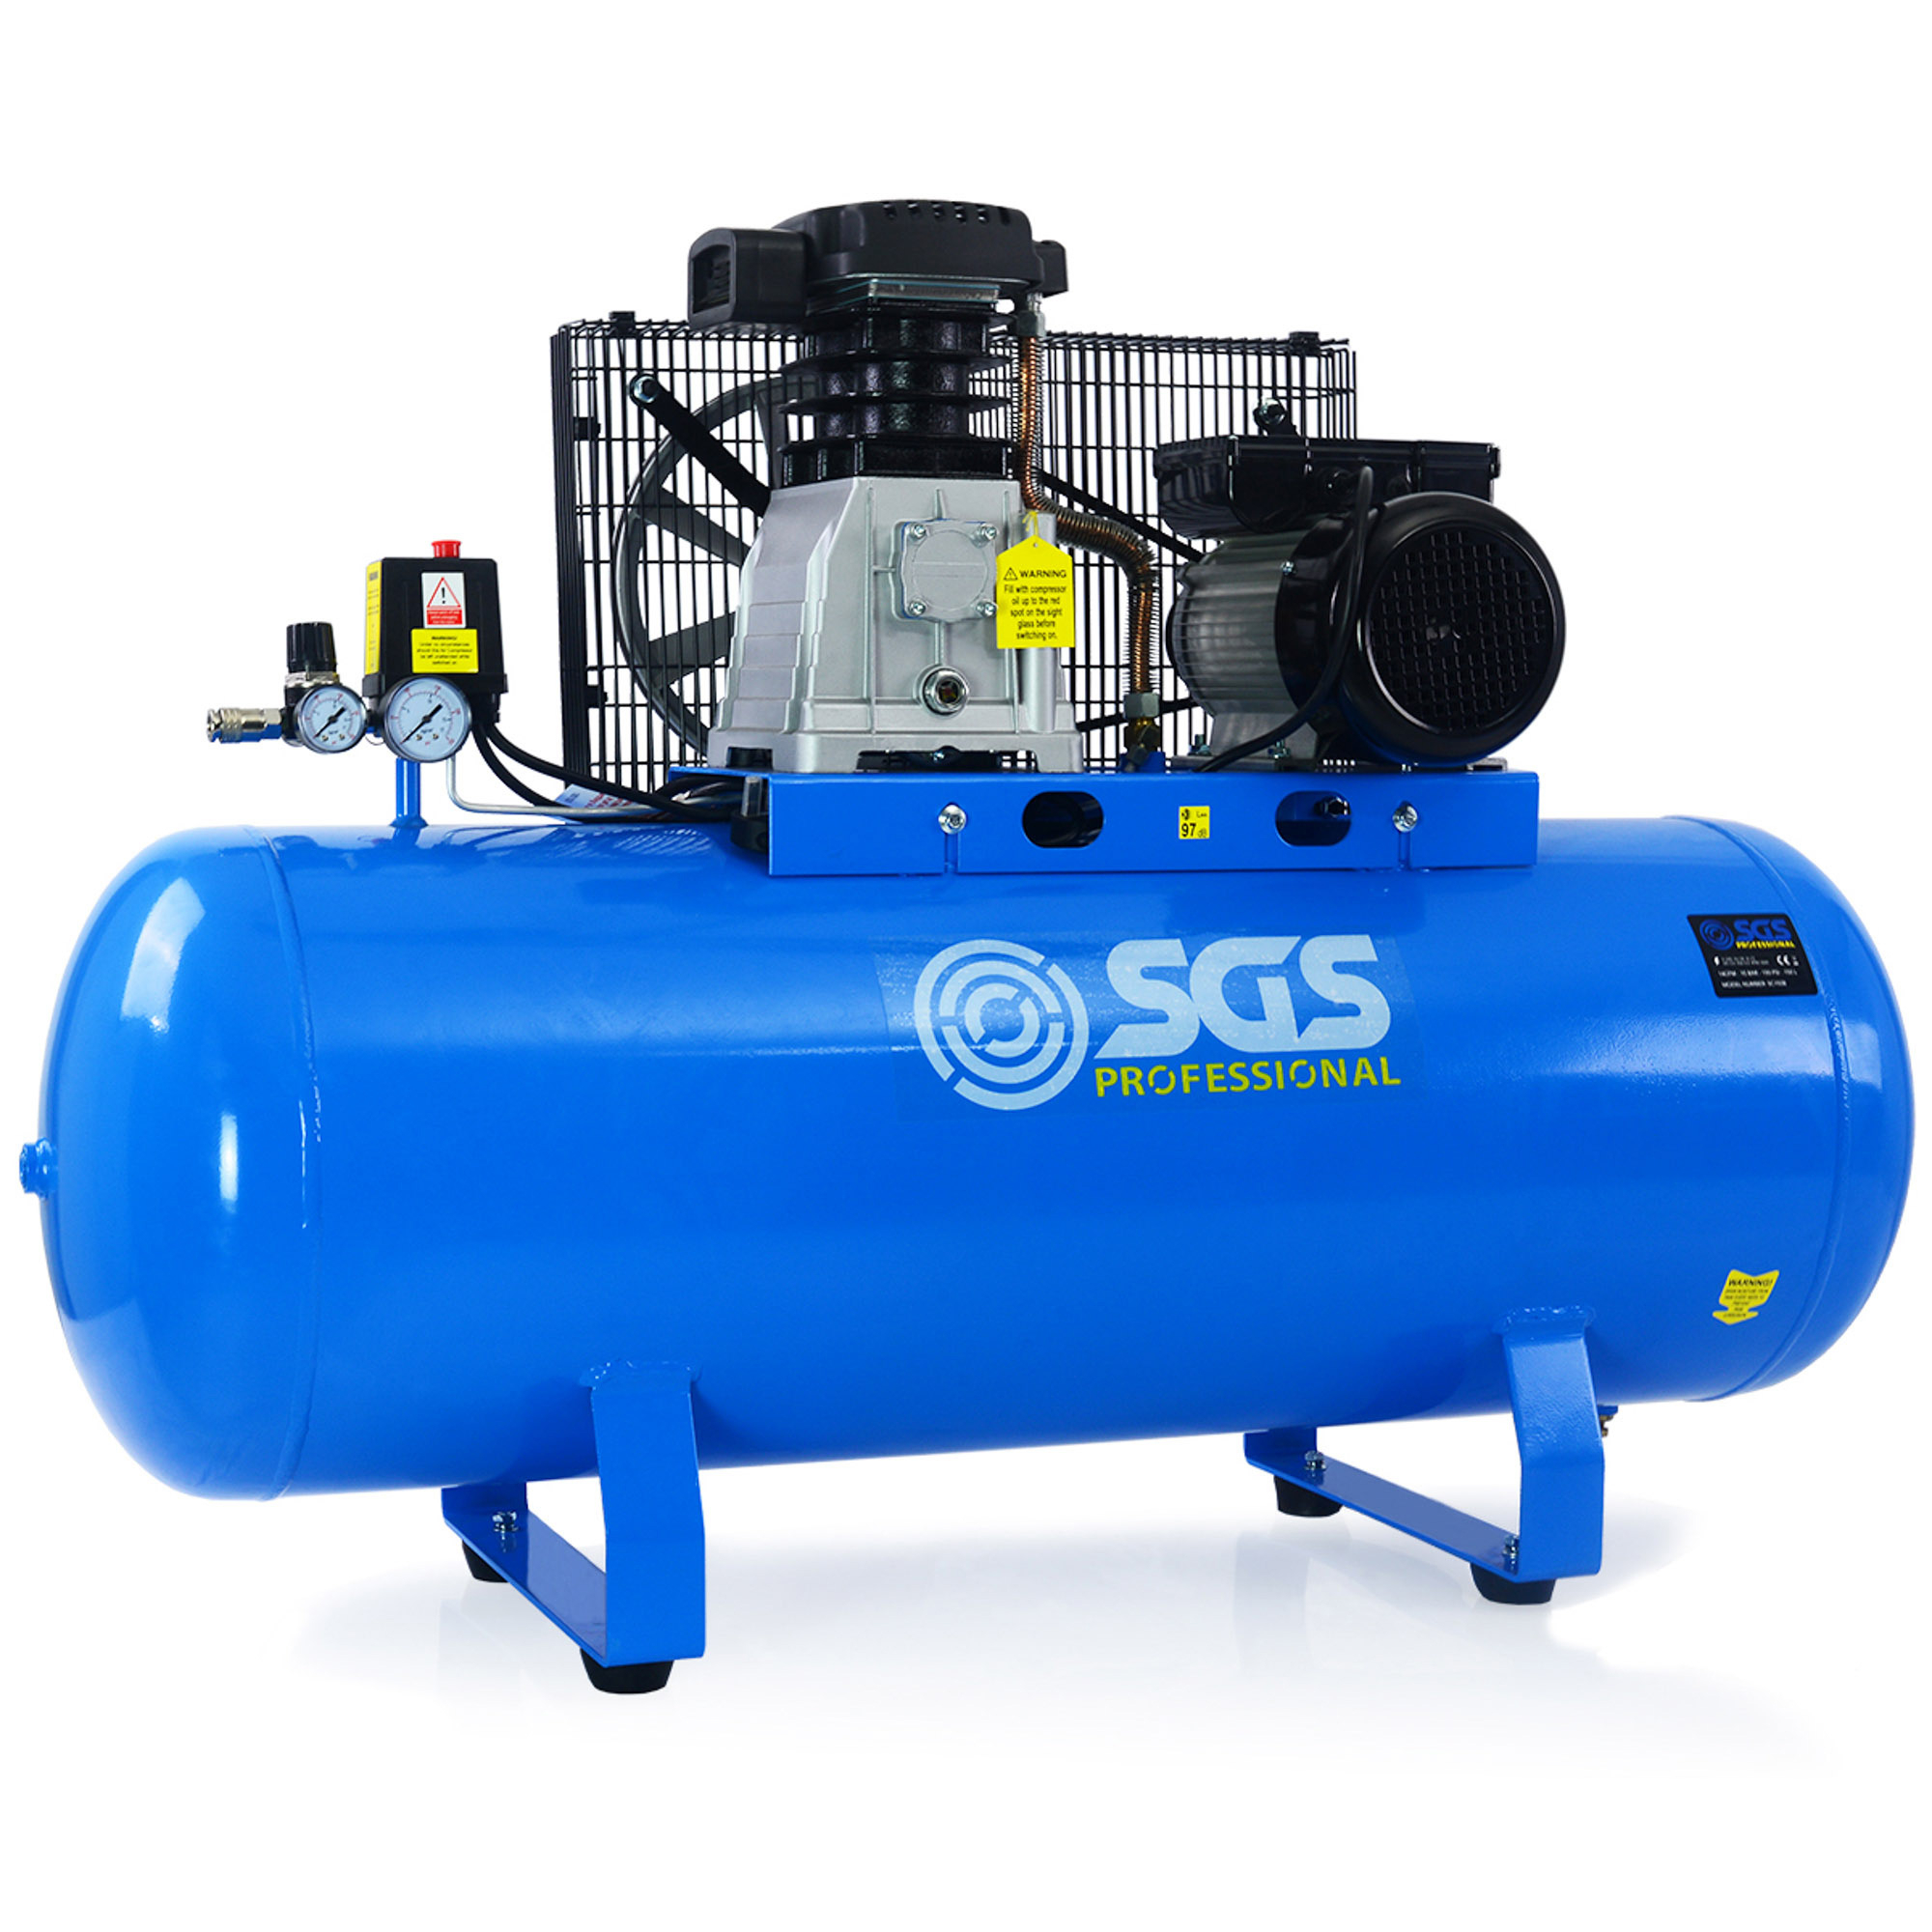 Air Compressors Whisper Silent Compressor Pro 80l Oil Free Low Noise 69db Air Compressor Clinic Complete In Specifications